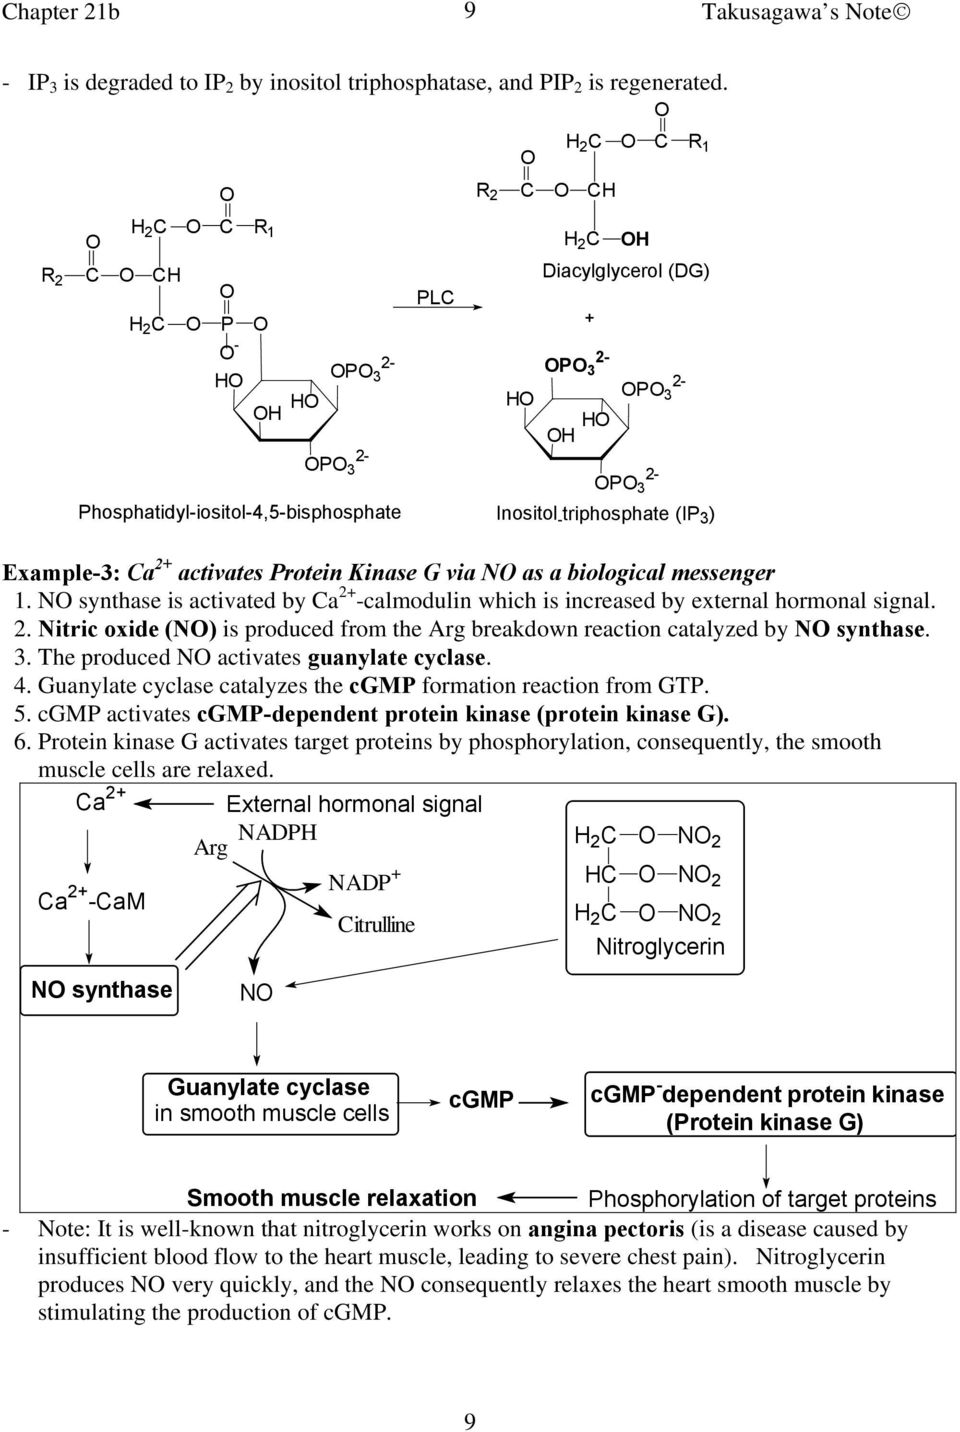 activates Protein Kinase G via N as a biological messenger 1. N synthase is activated by a 2+ -calmodulin which is increased by external hormonal signal. 2. Nitric oxide (N) is produced from the Arg breakdown reaction catalyzed by N synthase.